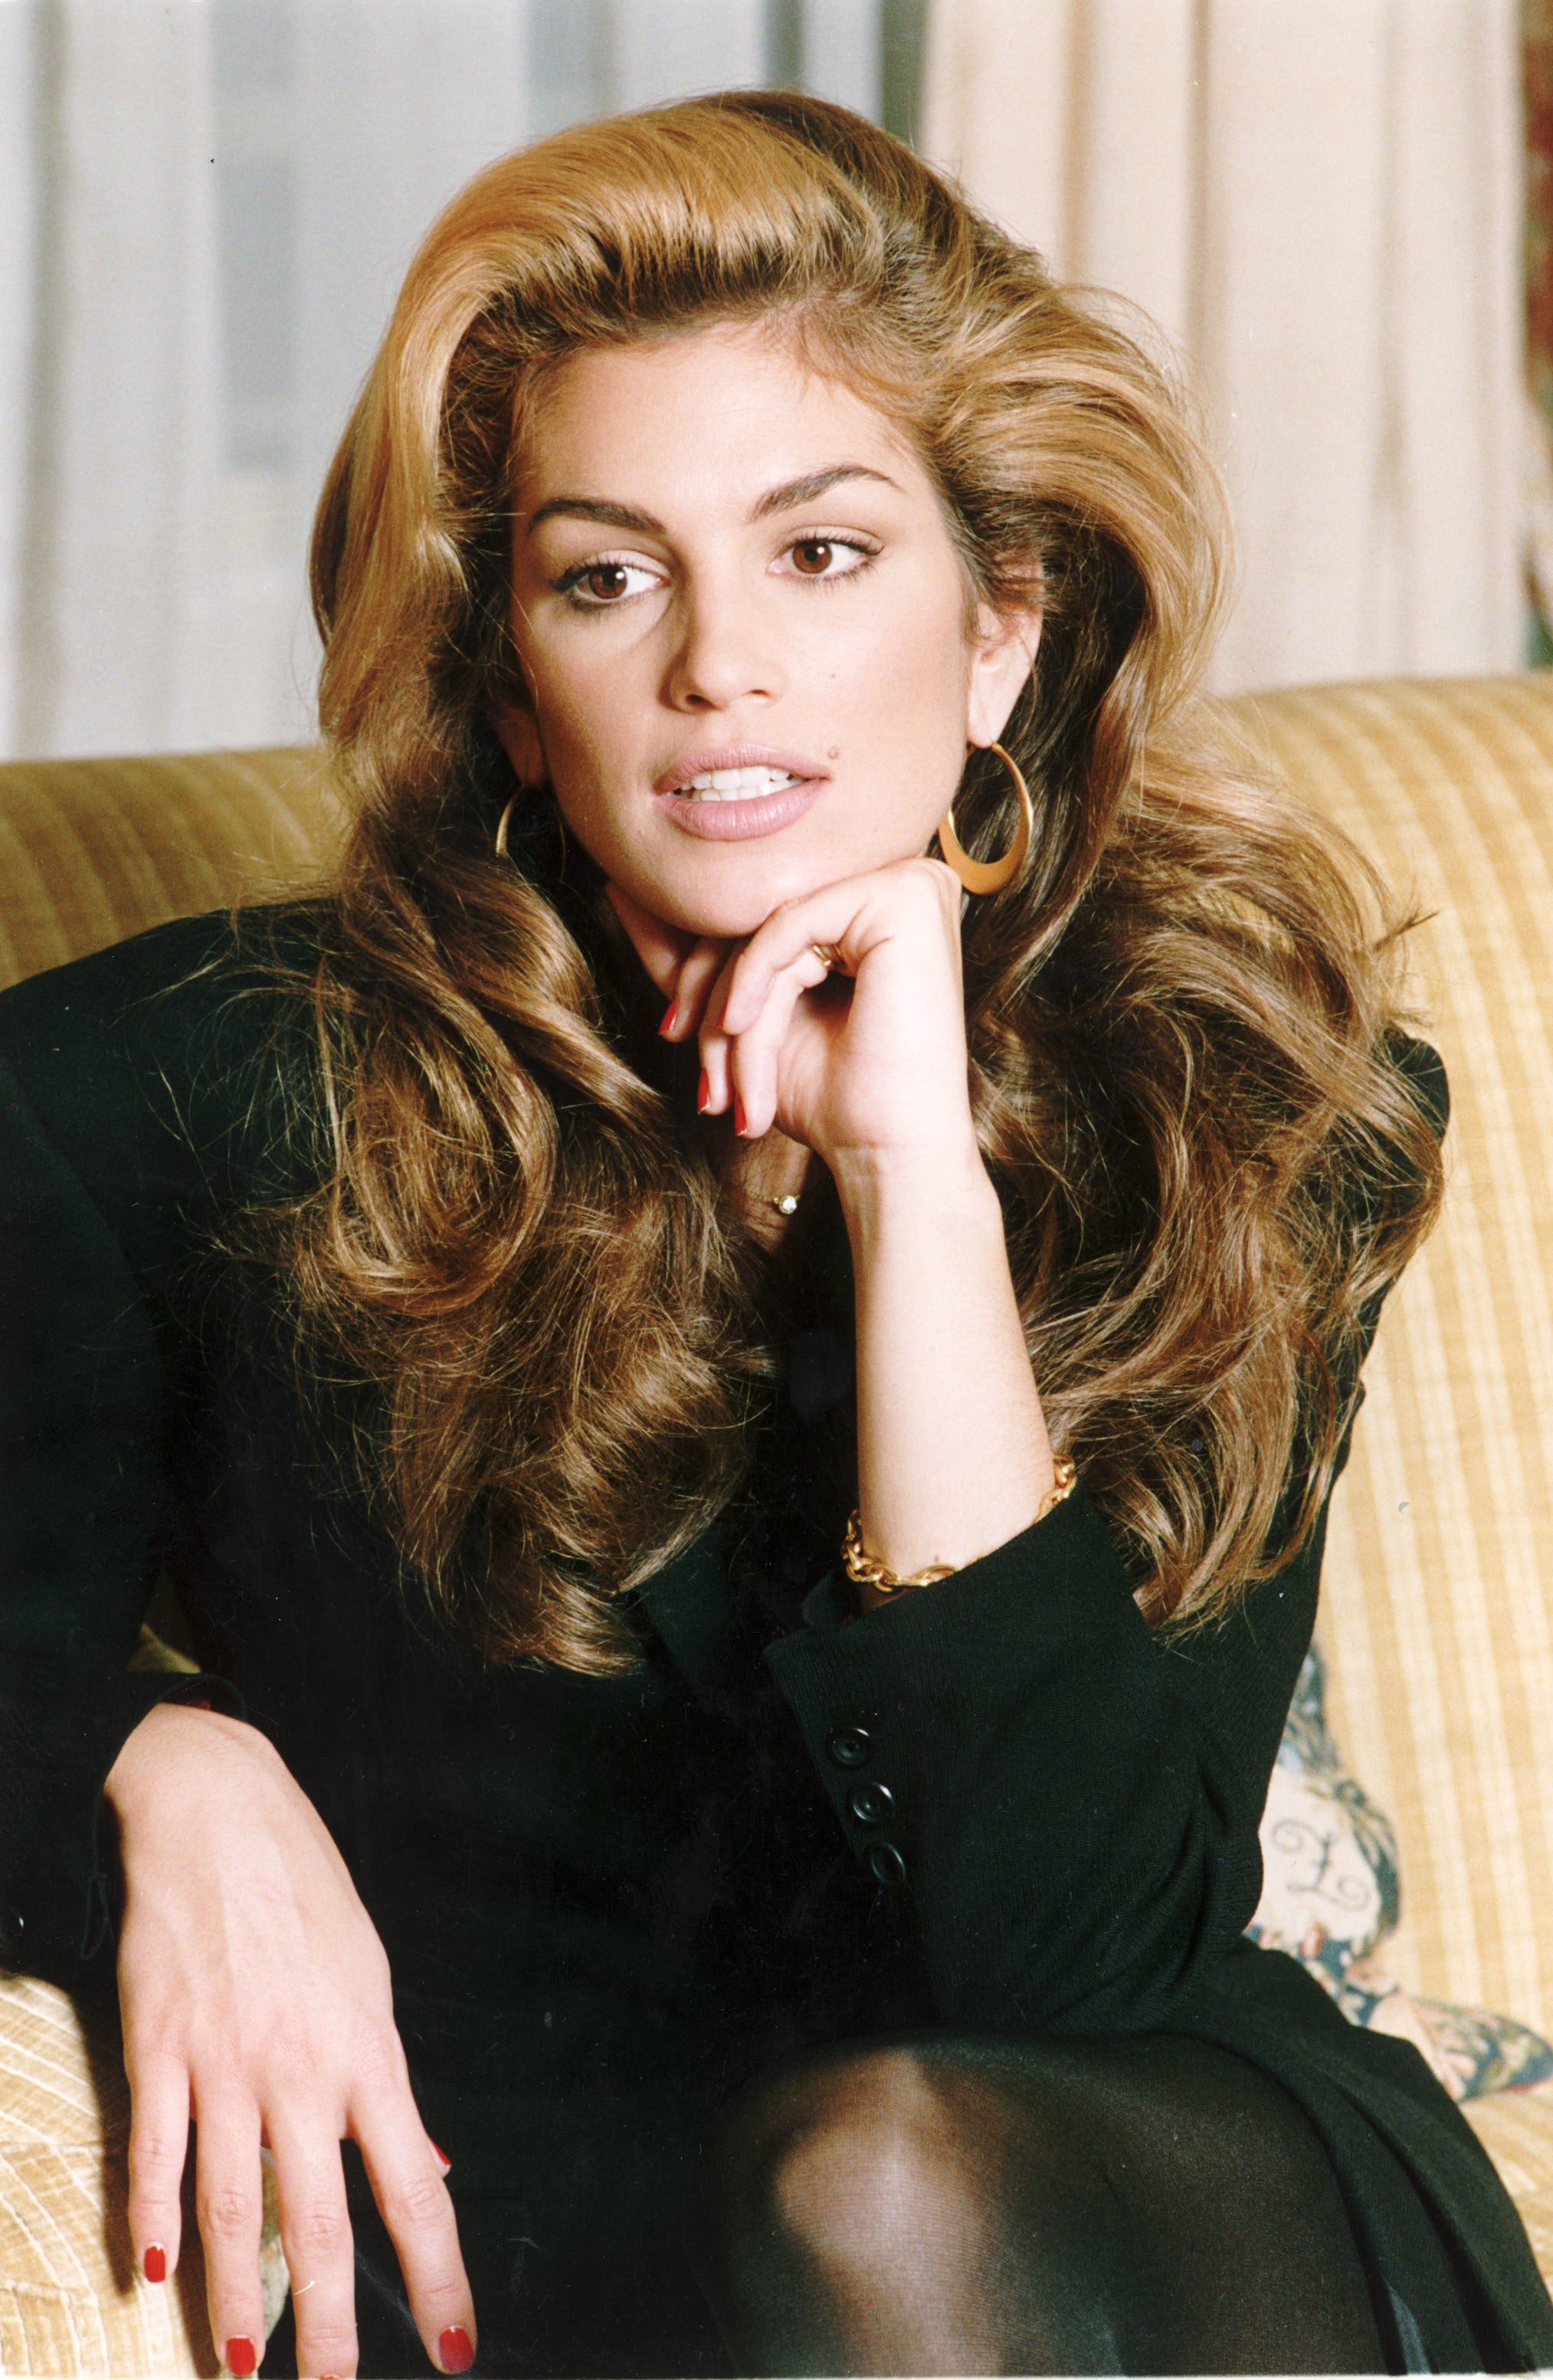 Cindy Crawford Young Model Supermodels Of The 80s And